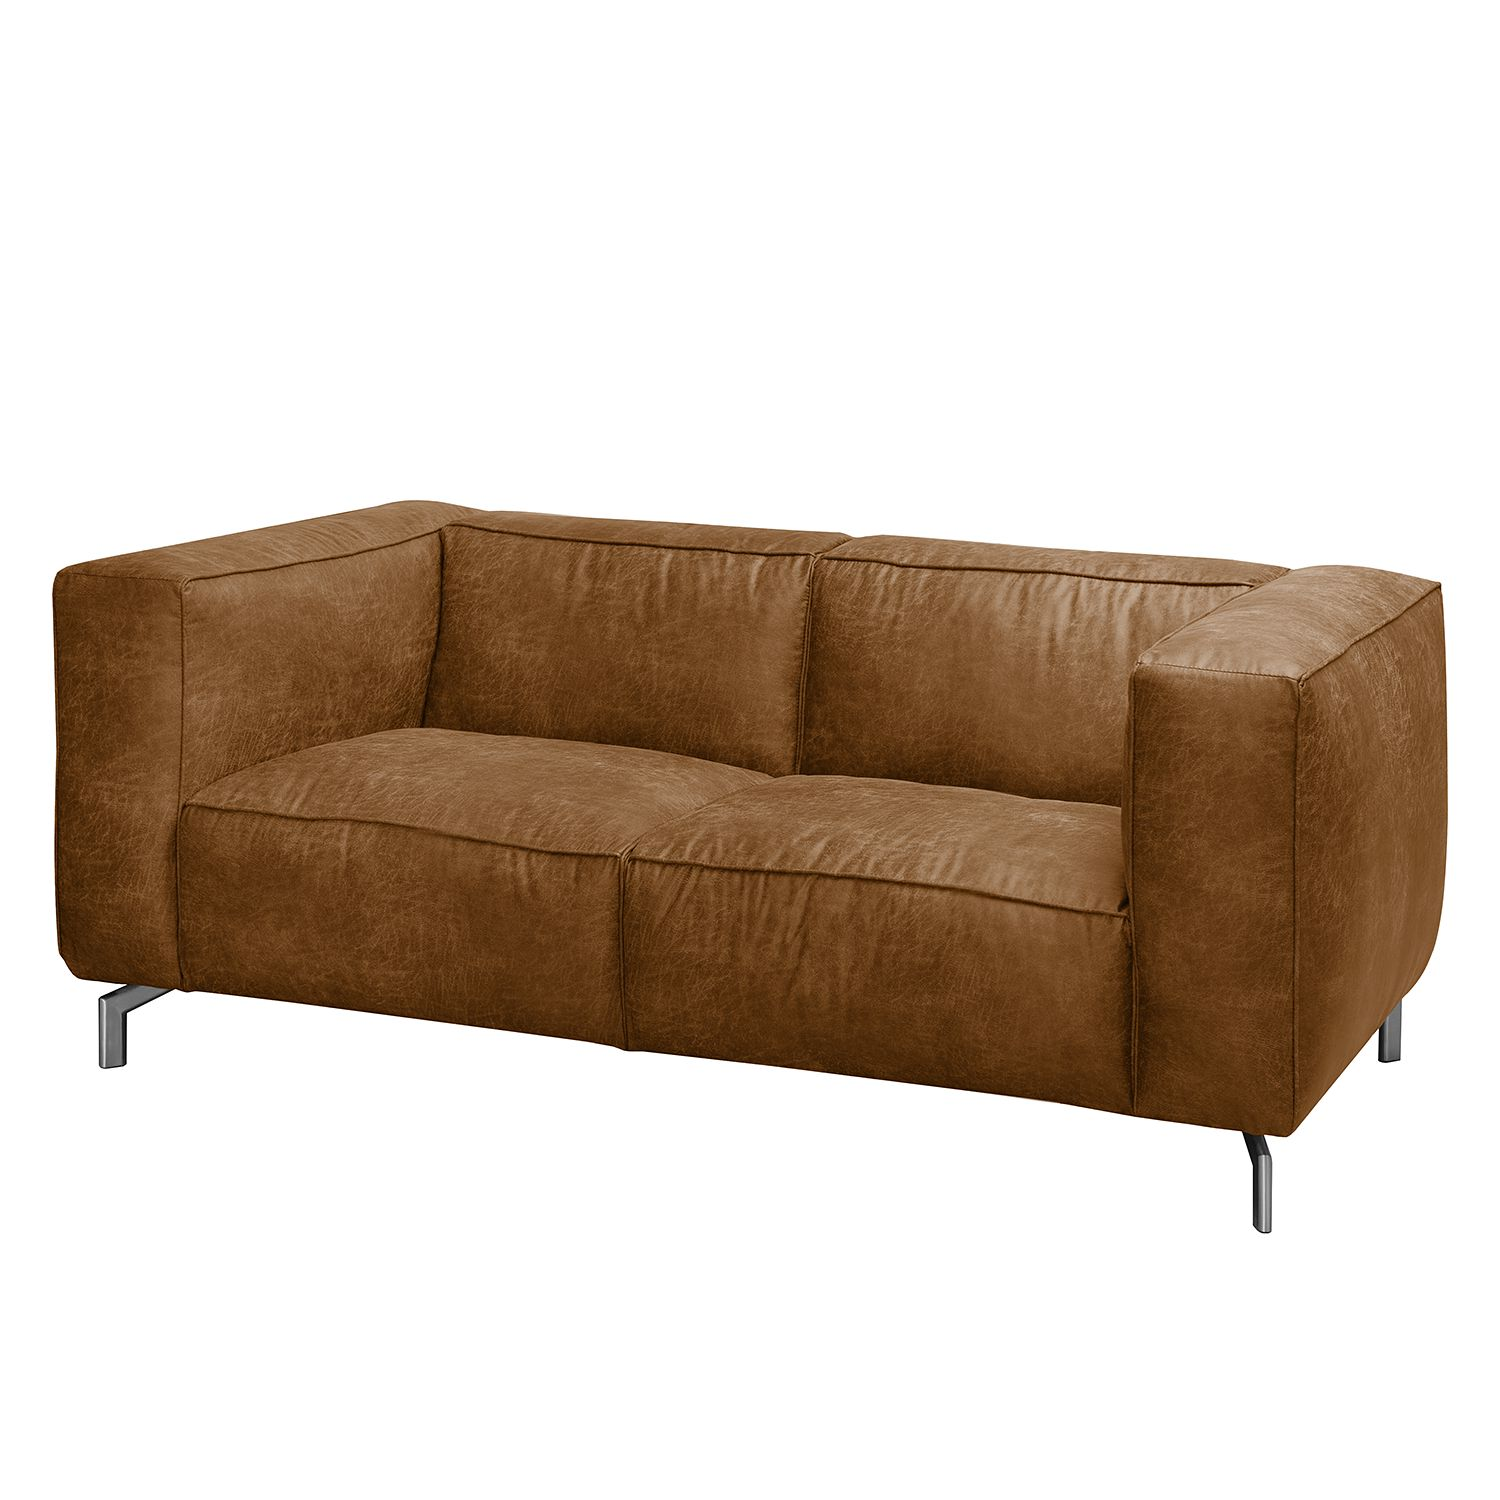 Sofa Pentre (2-Sitzer) - Antiklederlook - Nougat, ars manufacti